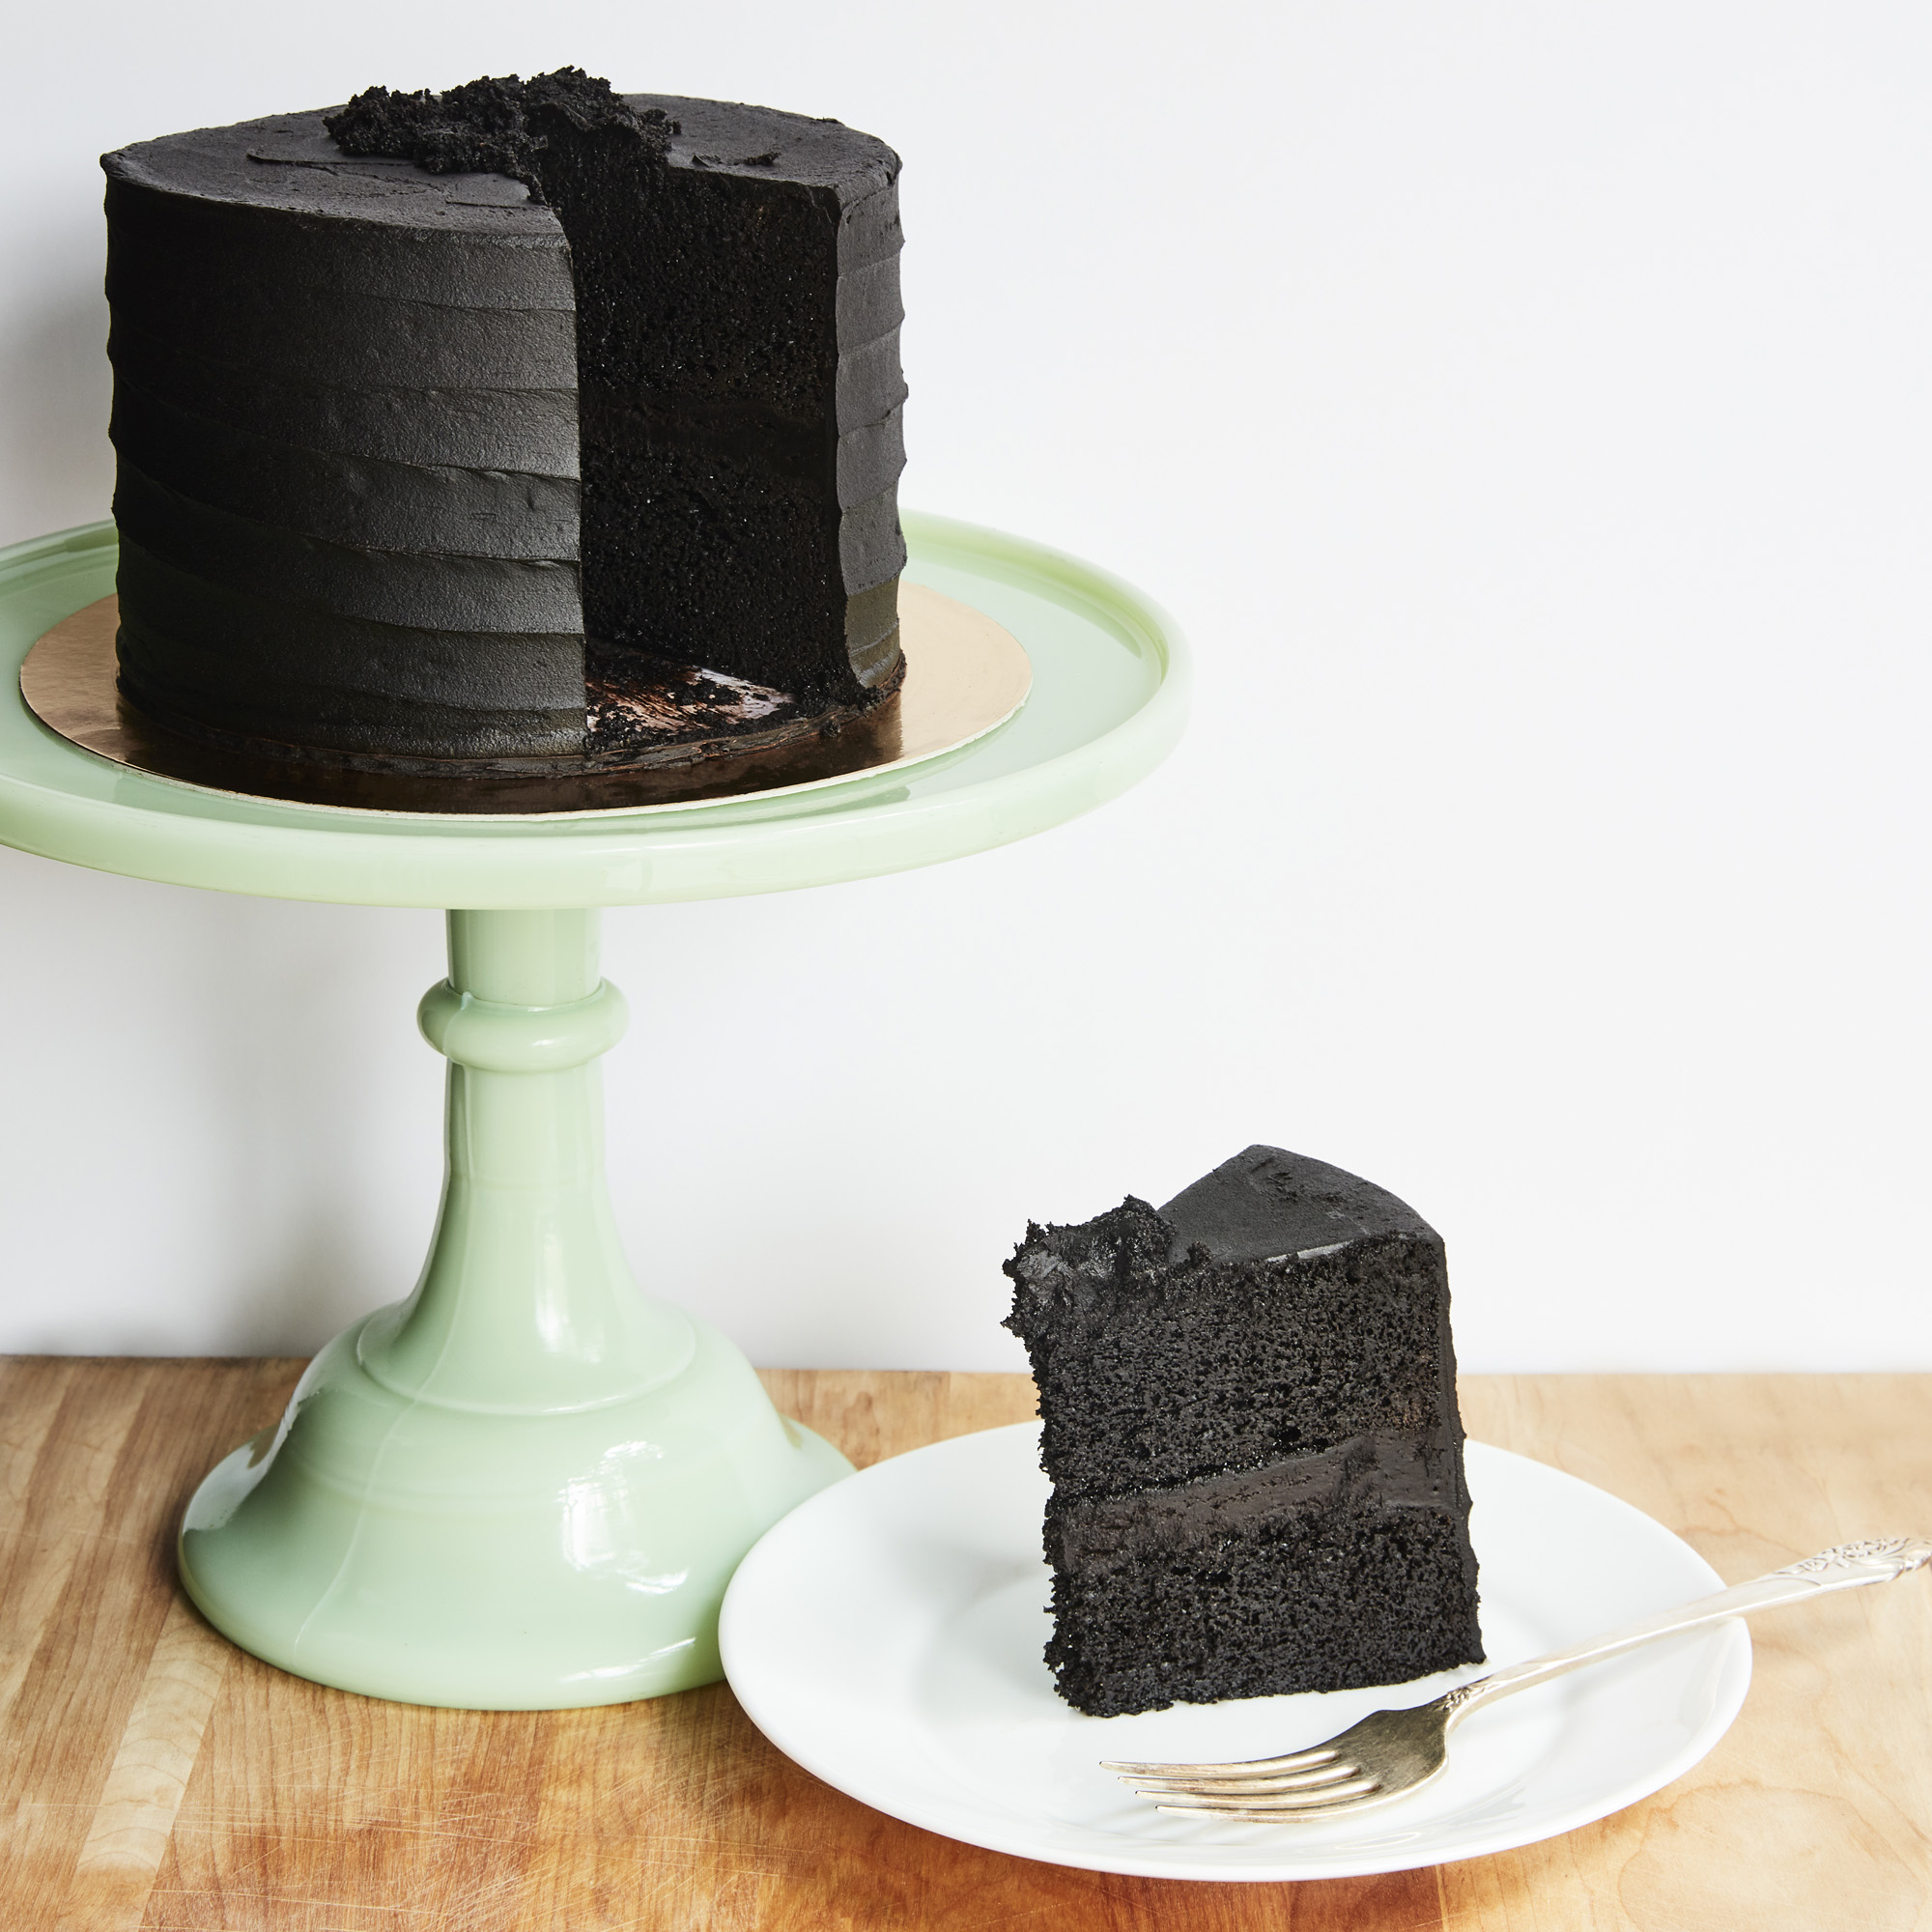 Brooklyn Blackout Cake and Slice